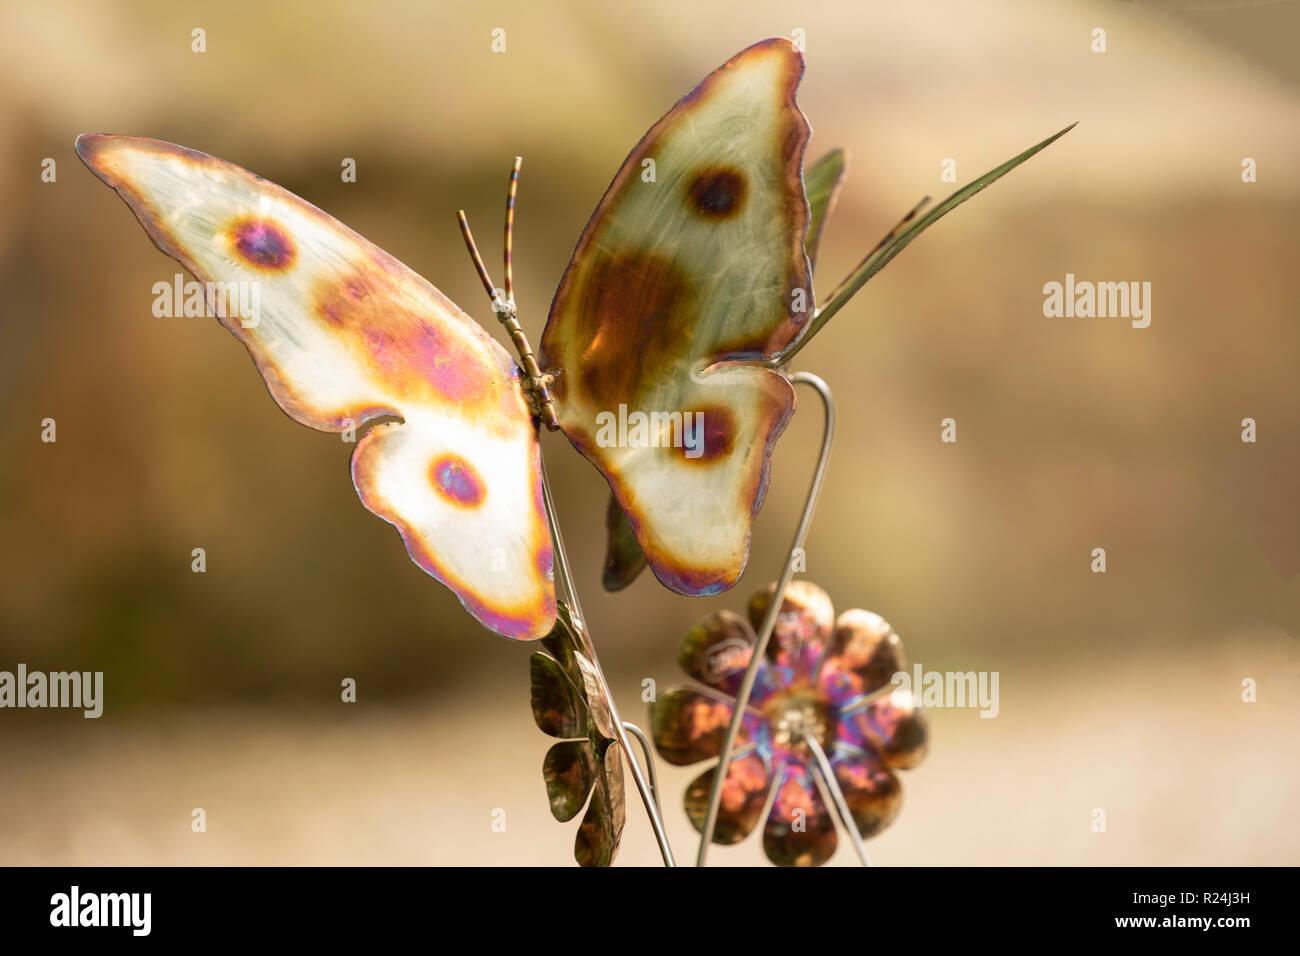 Metallic fused Butterfly. - Stock Image